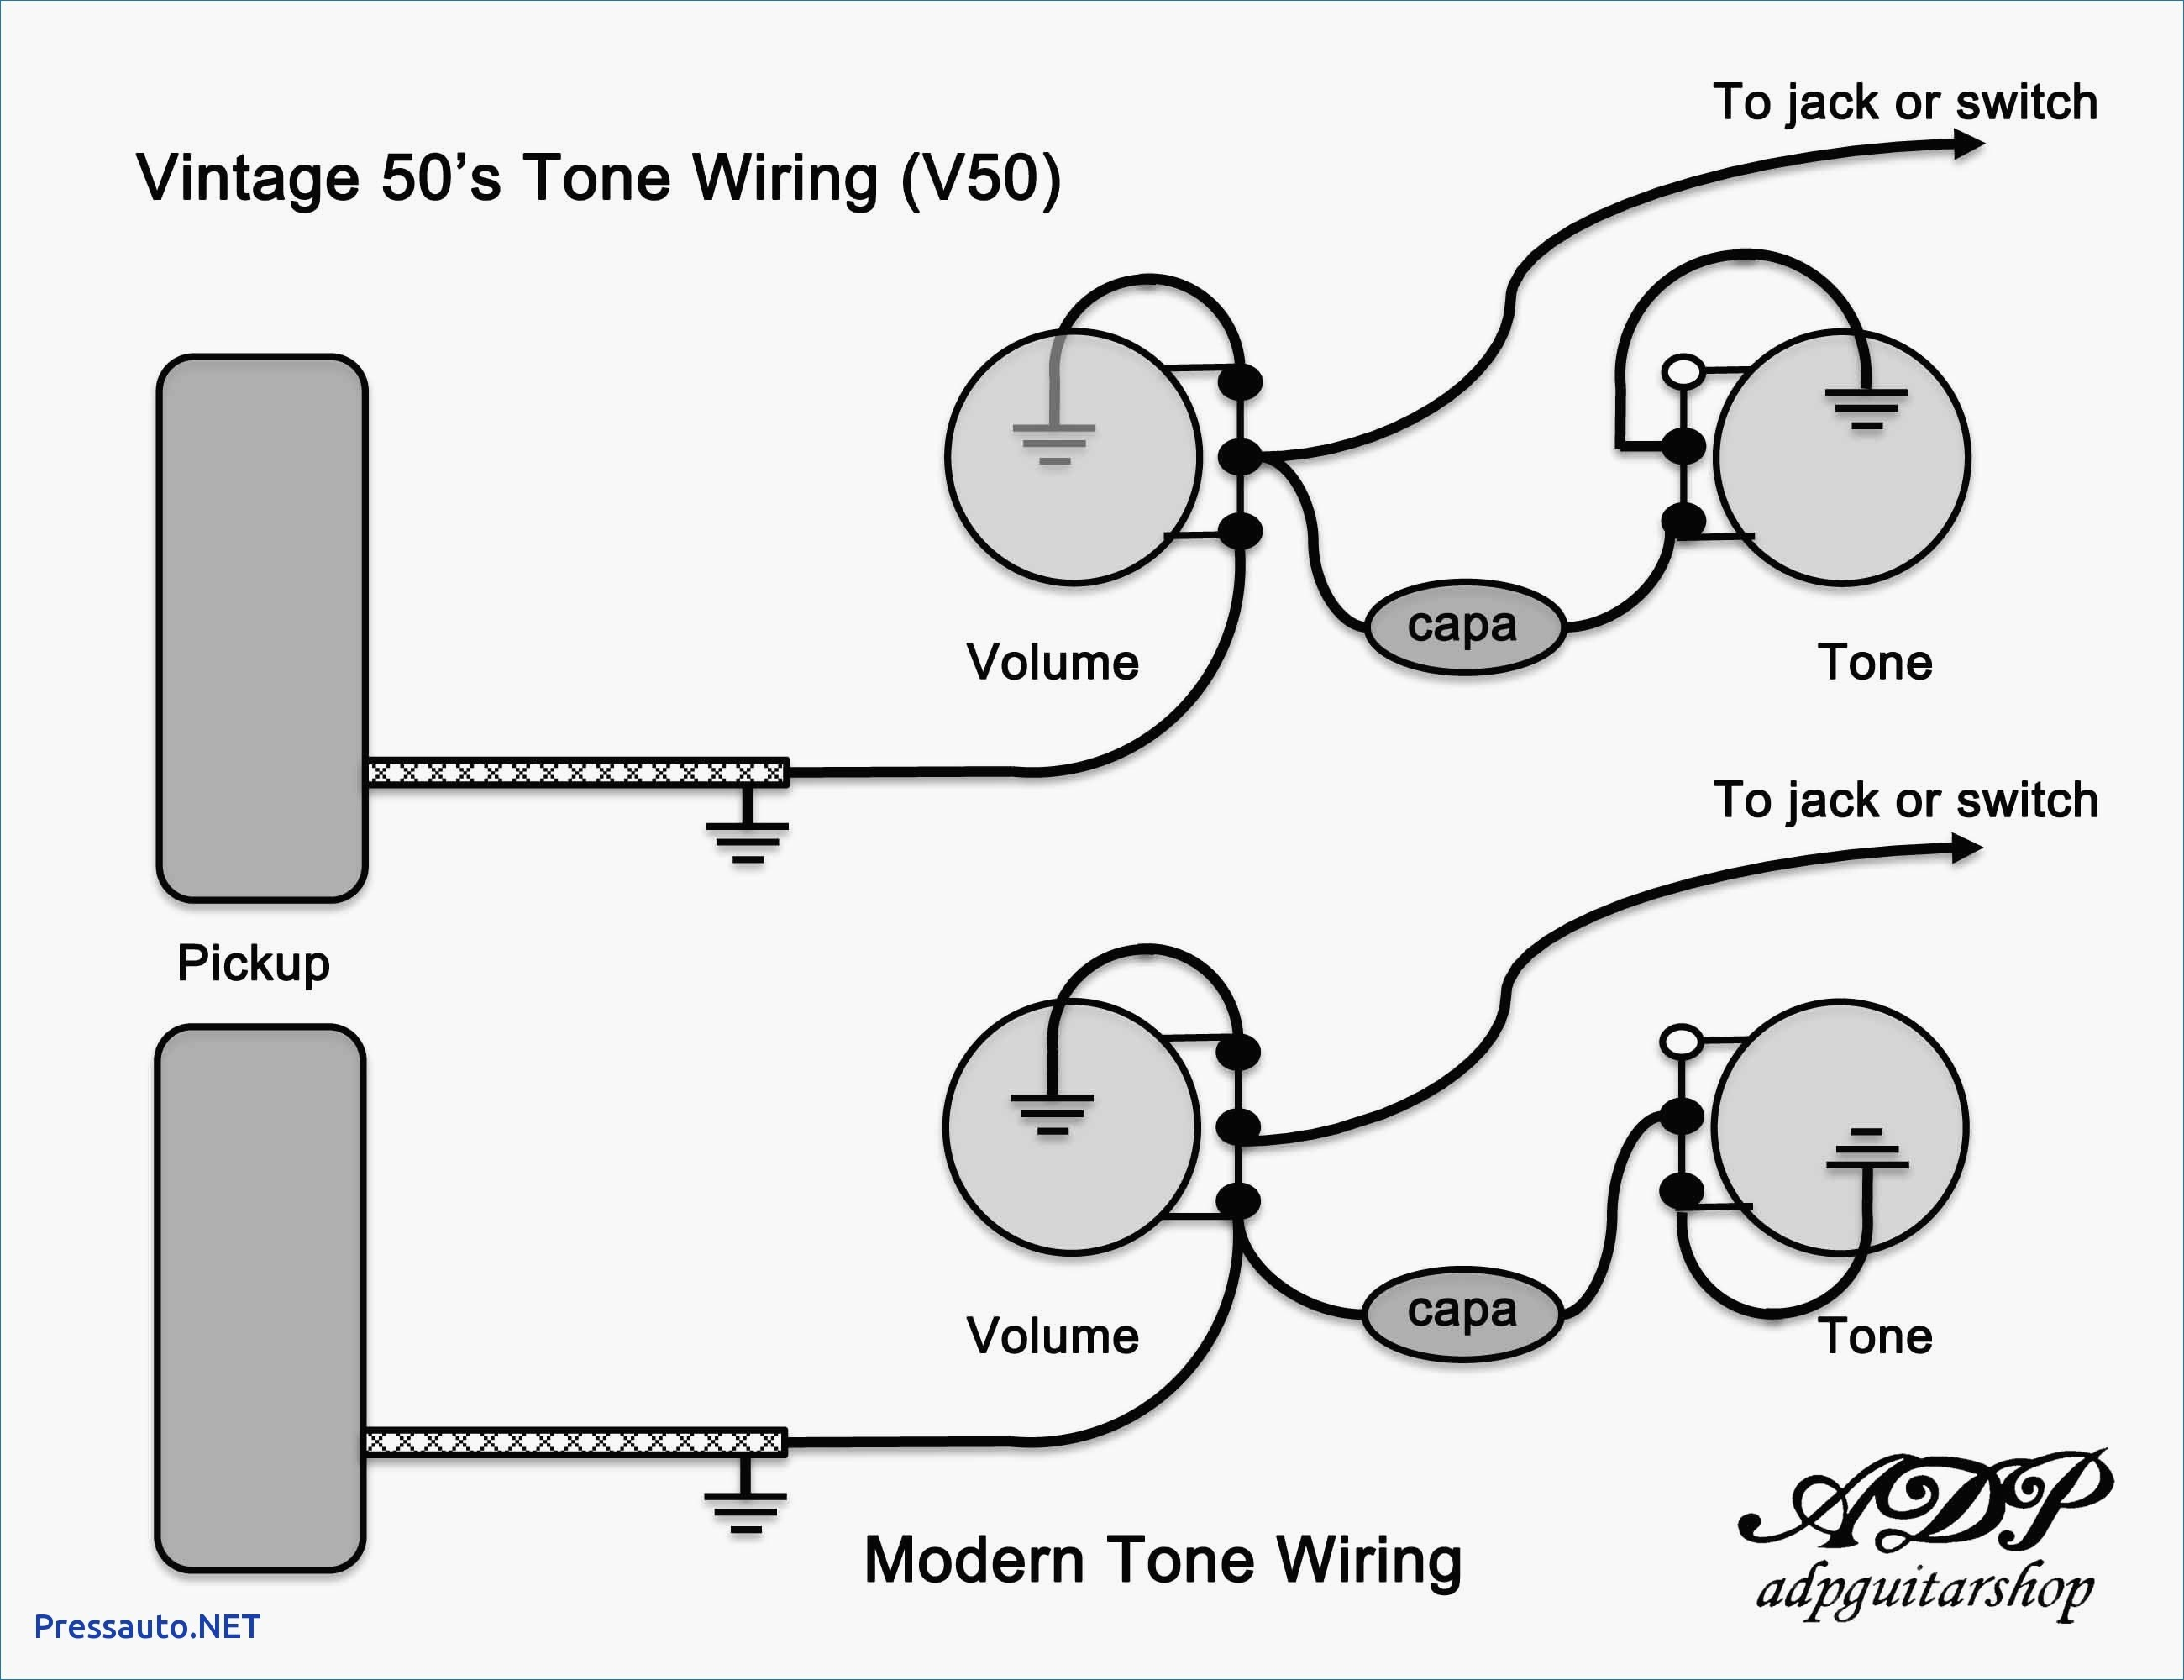 50s les paul wiring diagram best les paul switch wiring everything 50s les paul wiring diagram les paul guitar drawing at getdrawings of 50s les paul wiring cheapraybanclubmaster Image collections